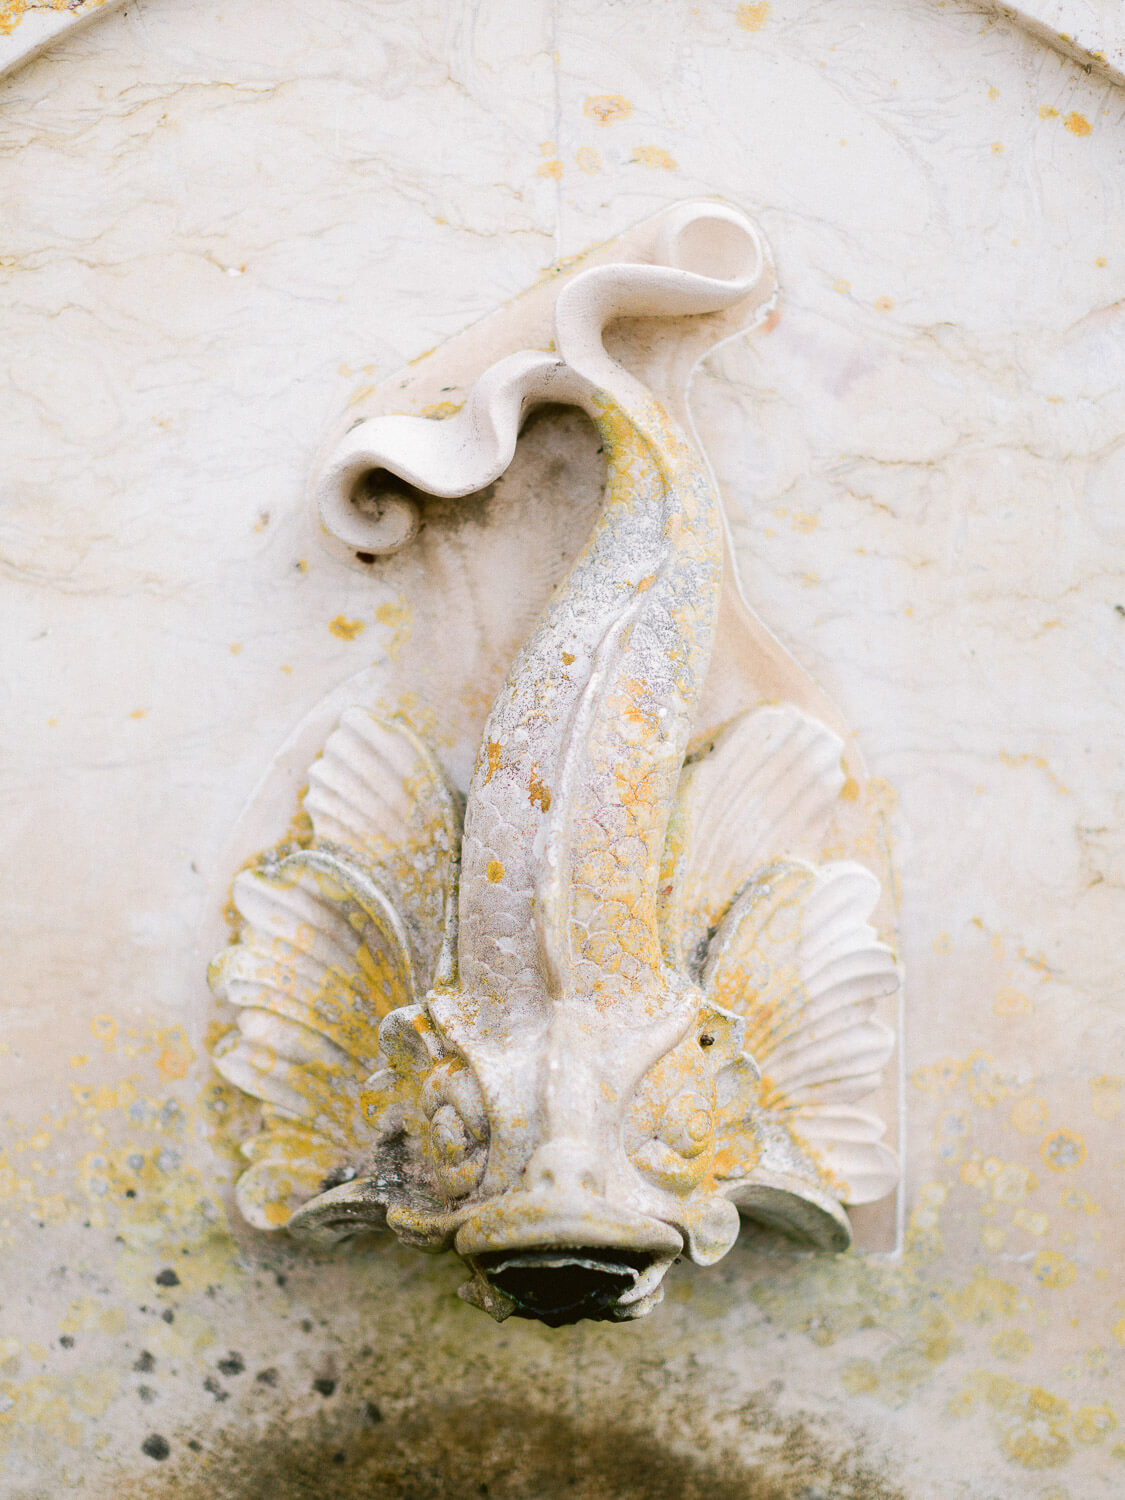 fountain's stone fish ornament detail by Portugal Wedding Photographer